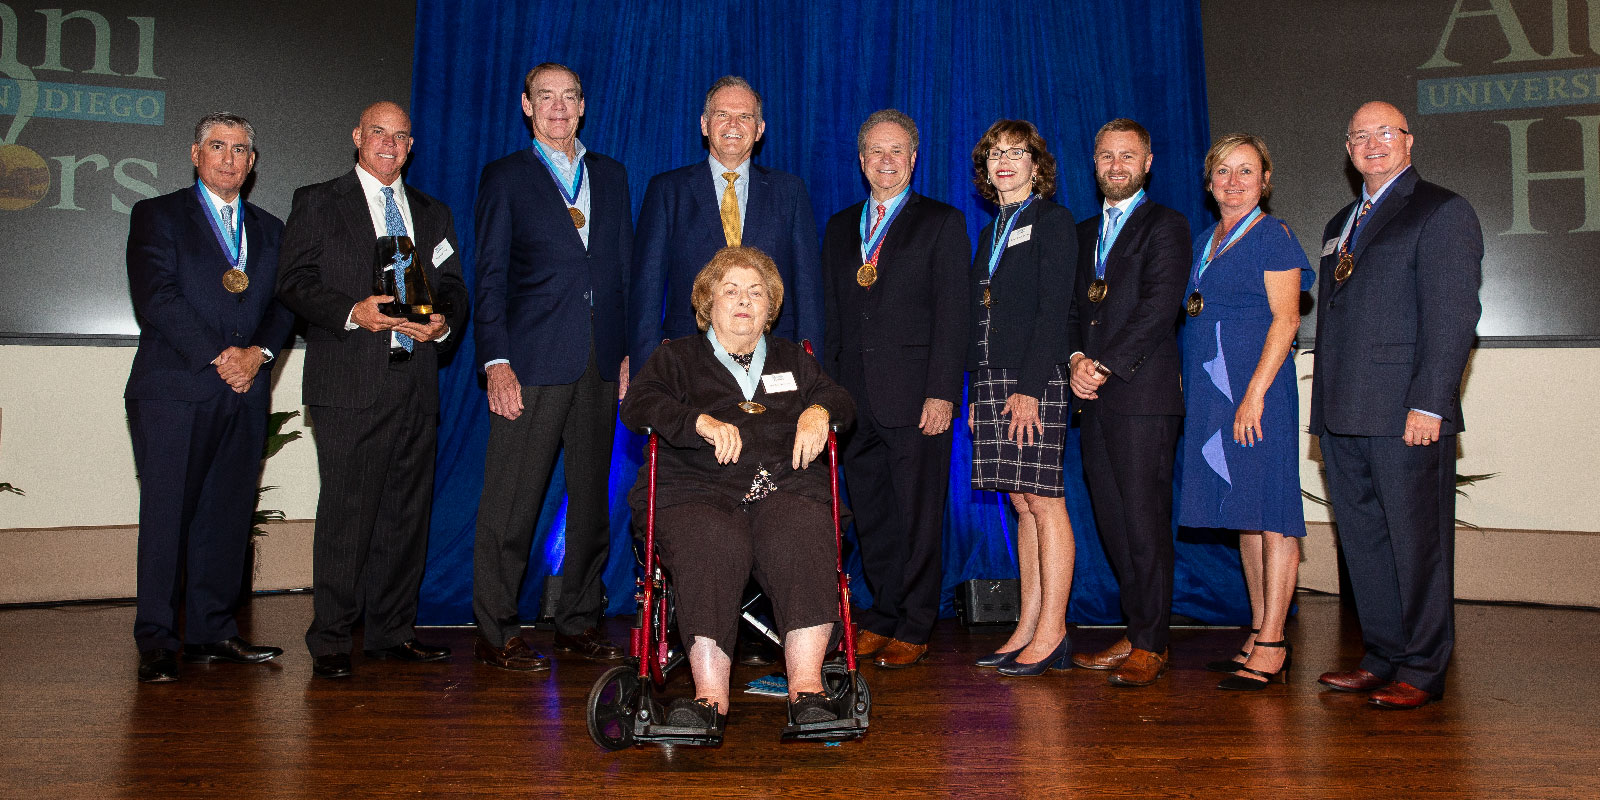 2019 recipients of USD's Alumni Honors awards on stage